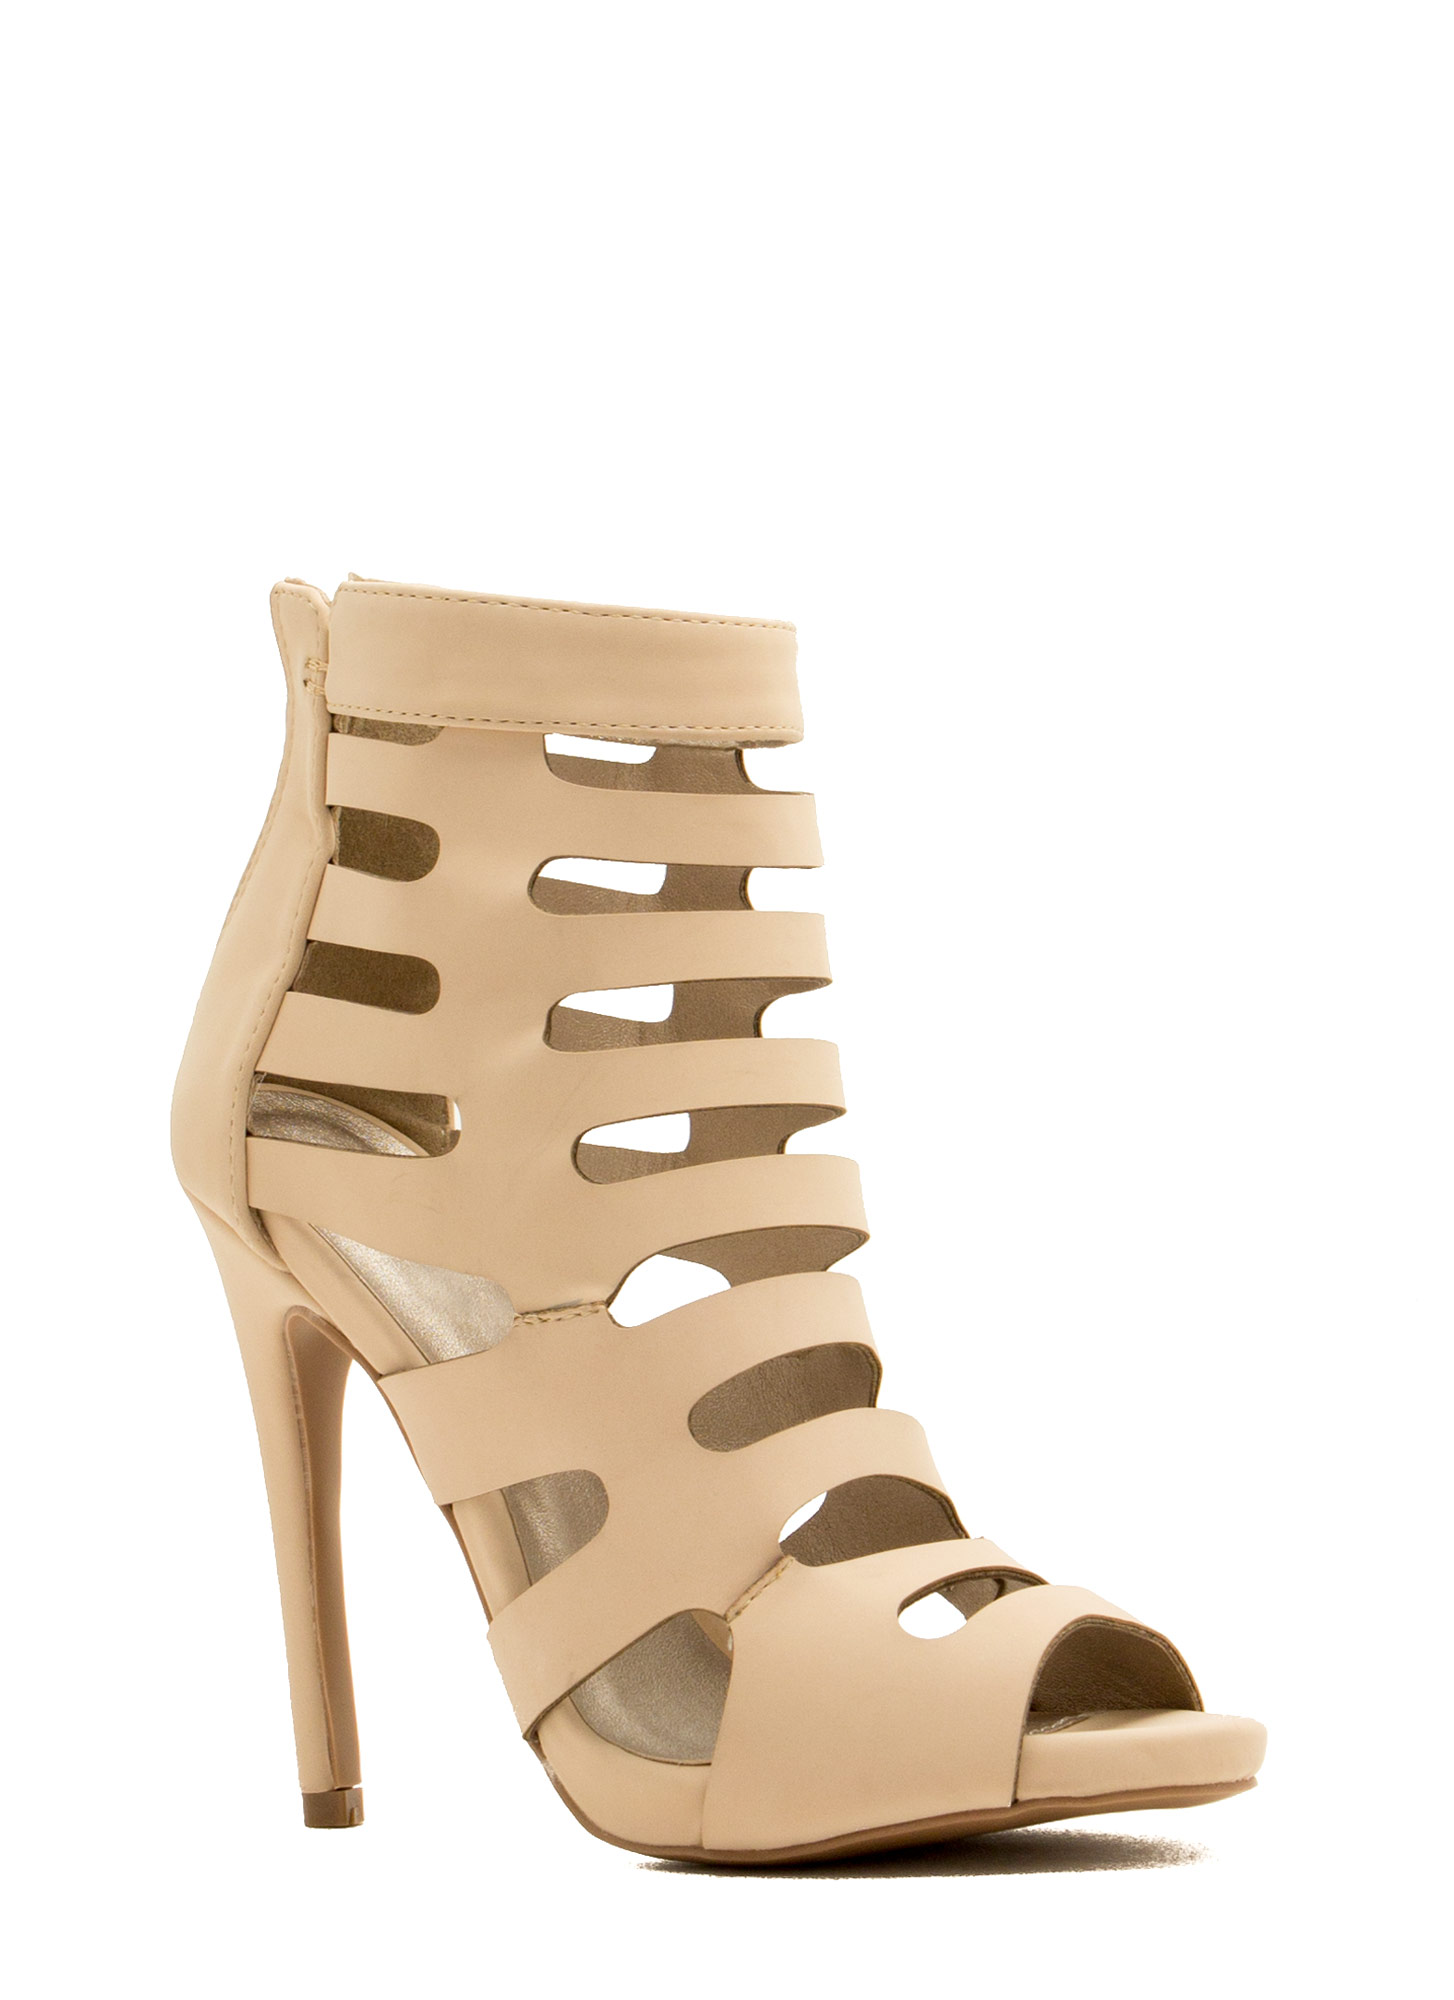 Ladder To The Top Heels NUDE